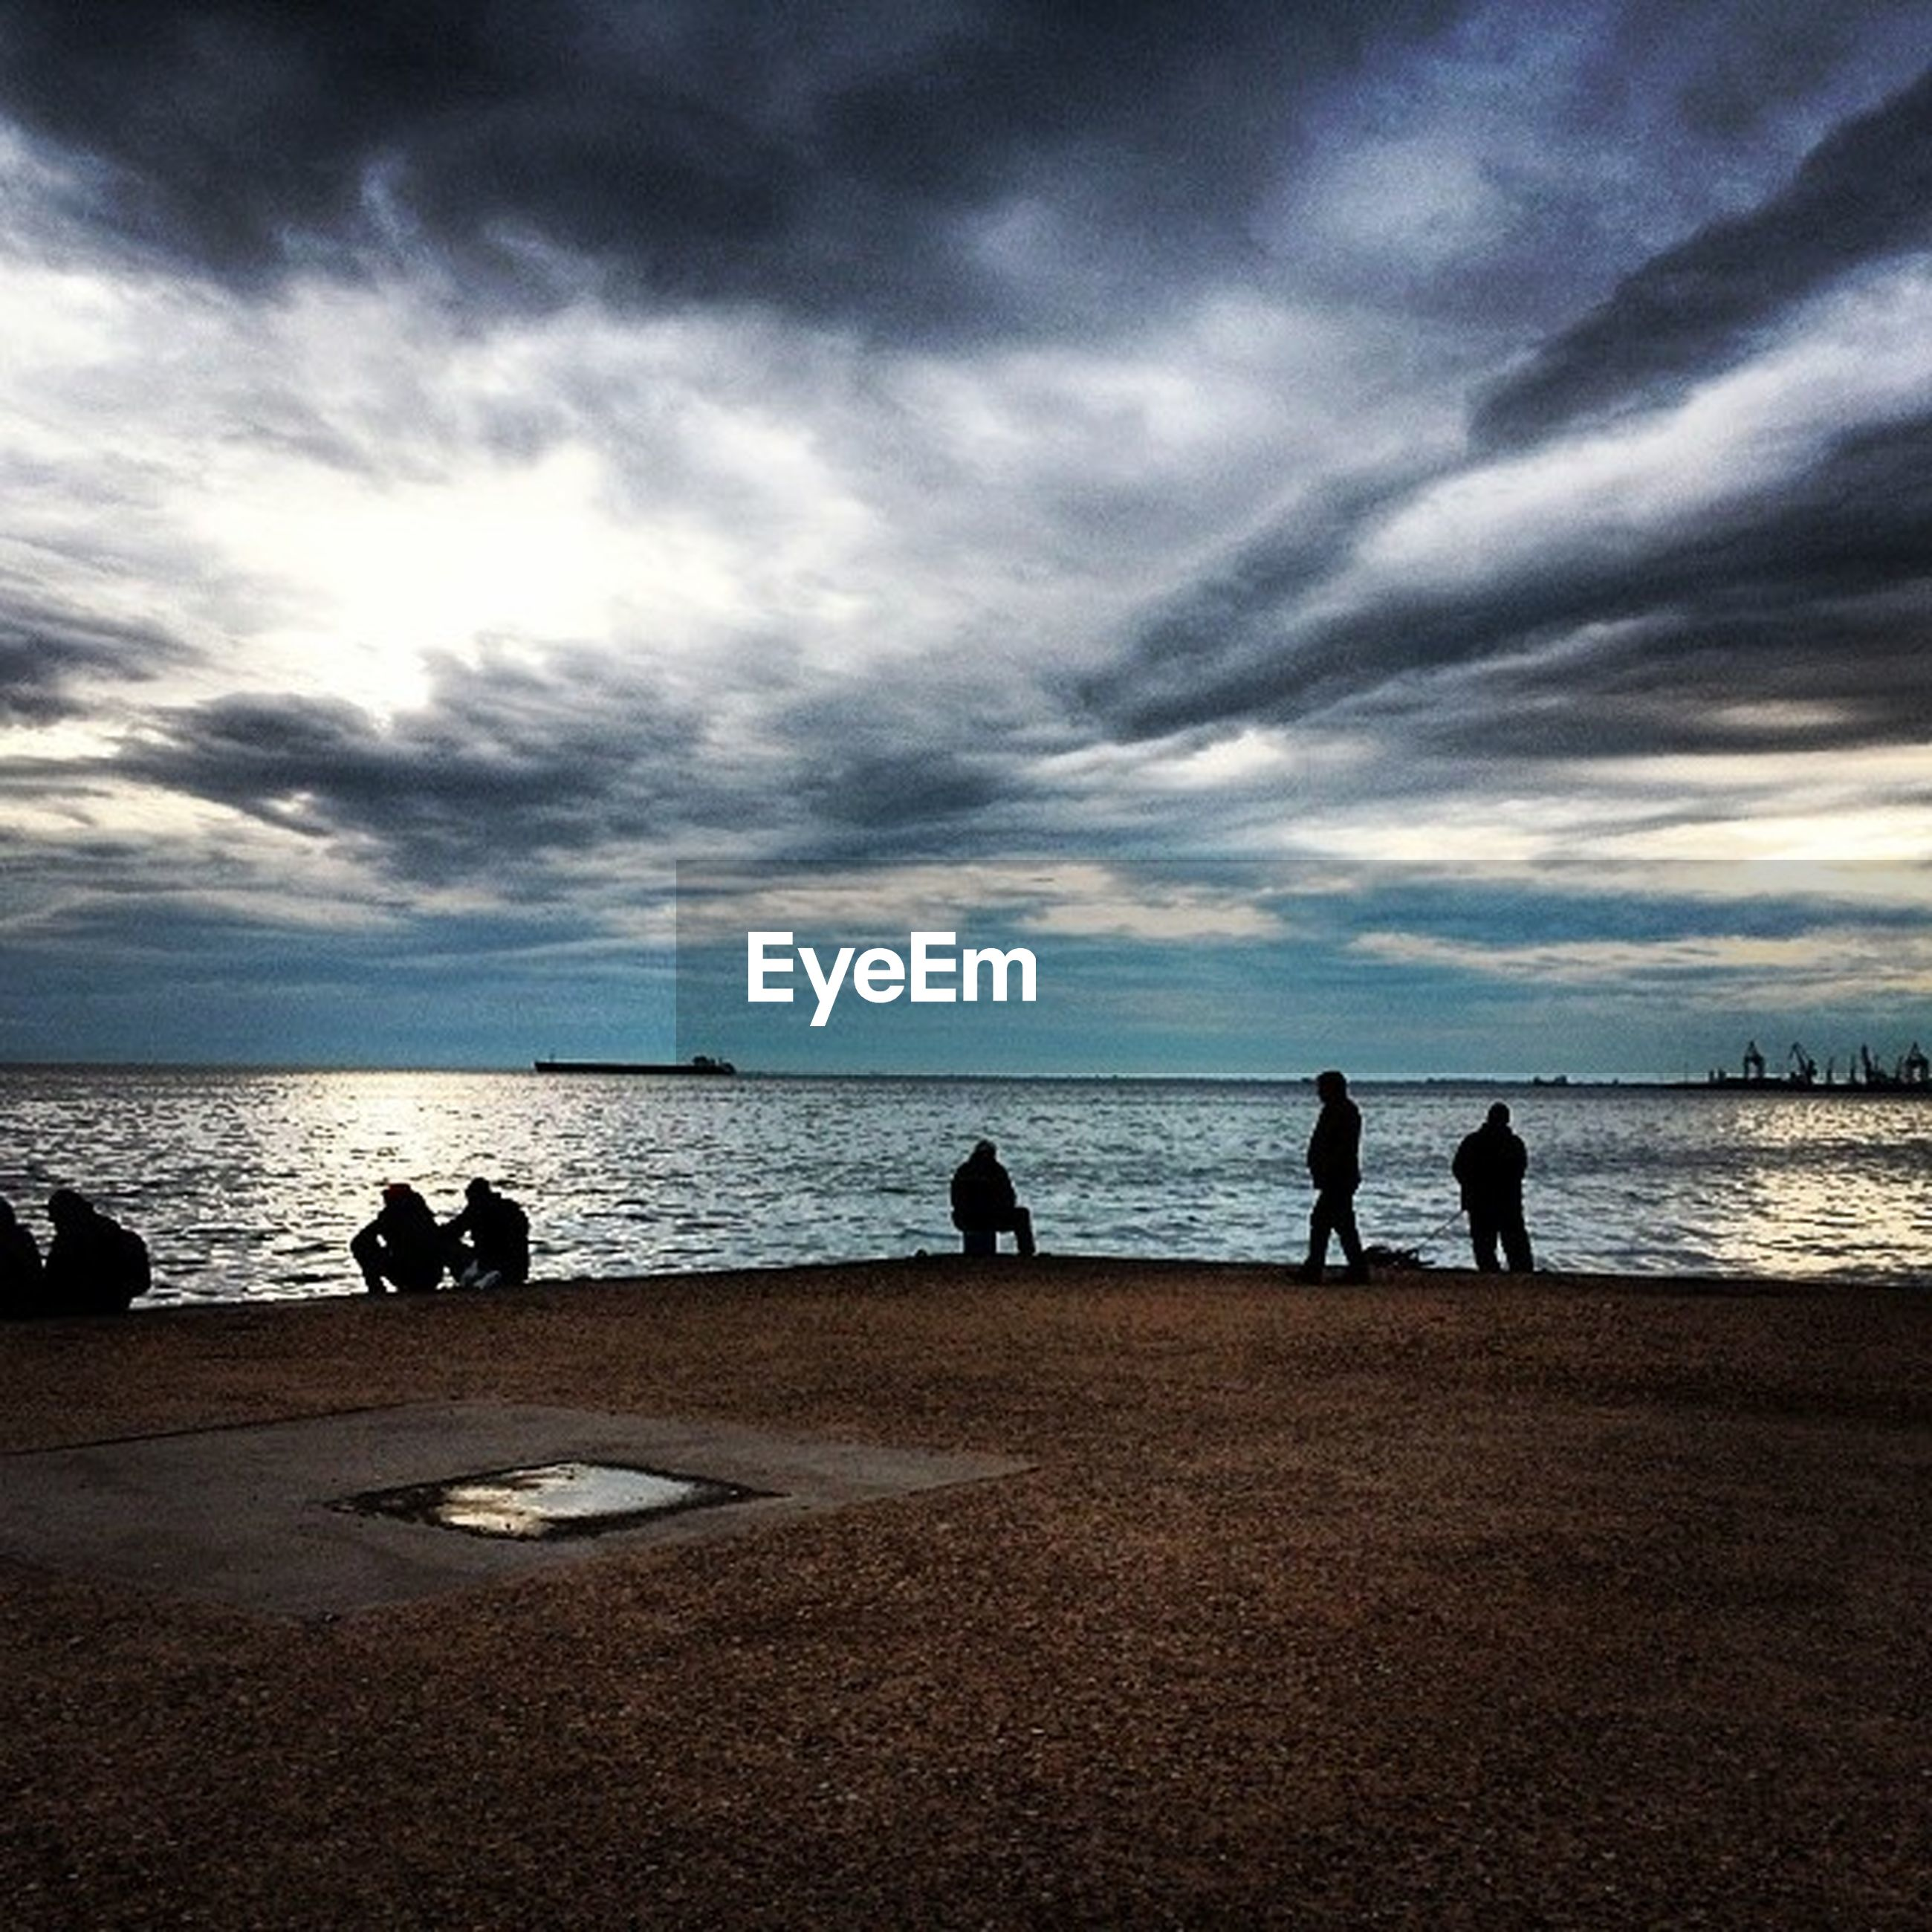 sky, water, sea, cloud - sky, beach, horizon over water, tranquil scene, scenics, tranquility, beauty in nature, cloudy, silhouette, shore, nature, cloud, leisure activity, men, idyllic, lifestyles